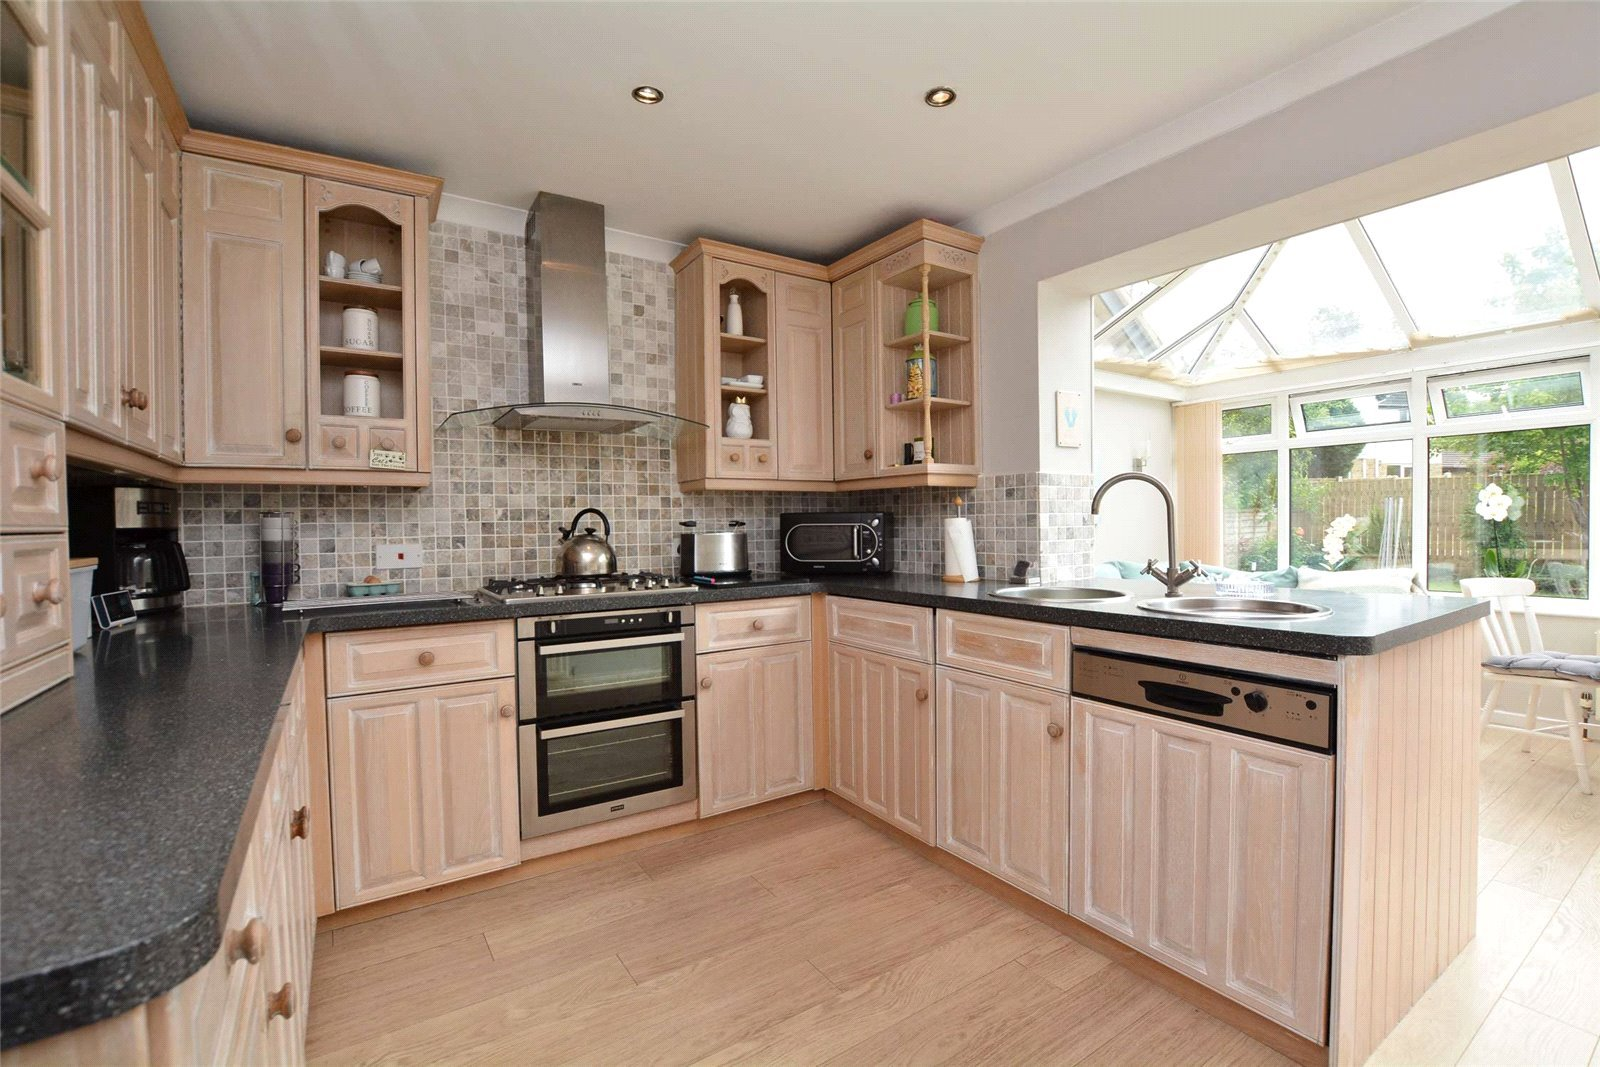 Property for sale in Wetherby, interior modern kitchen